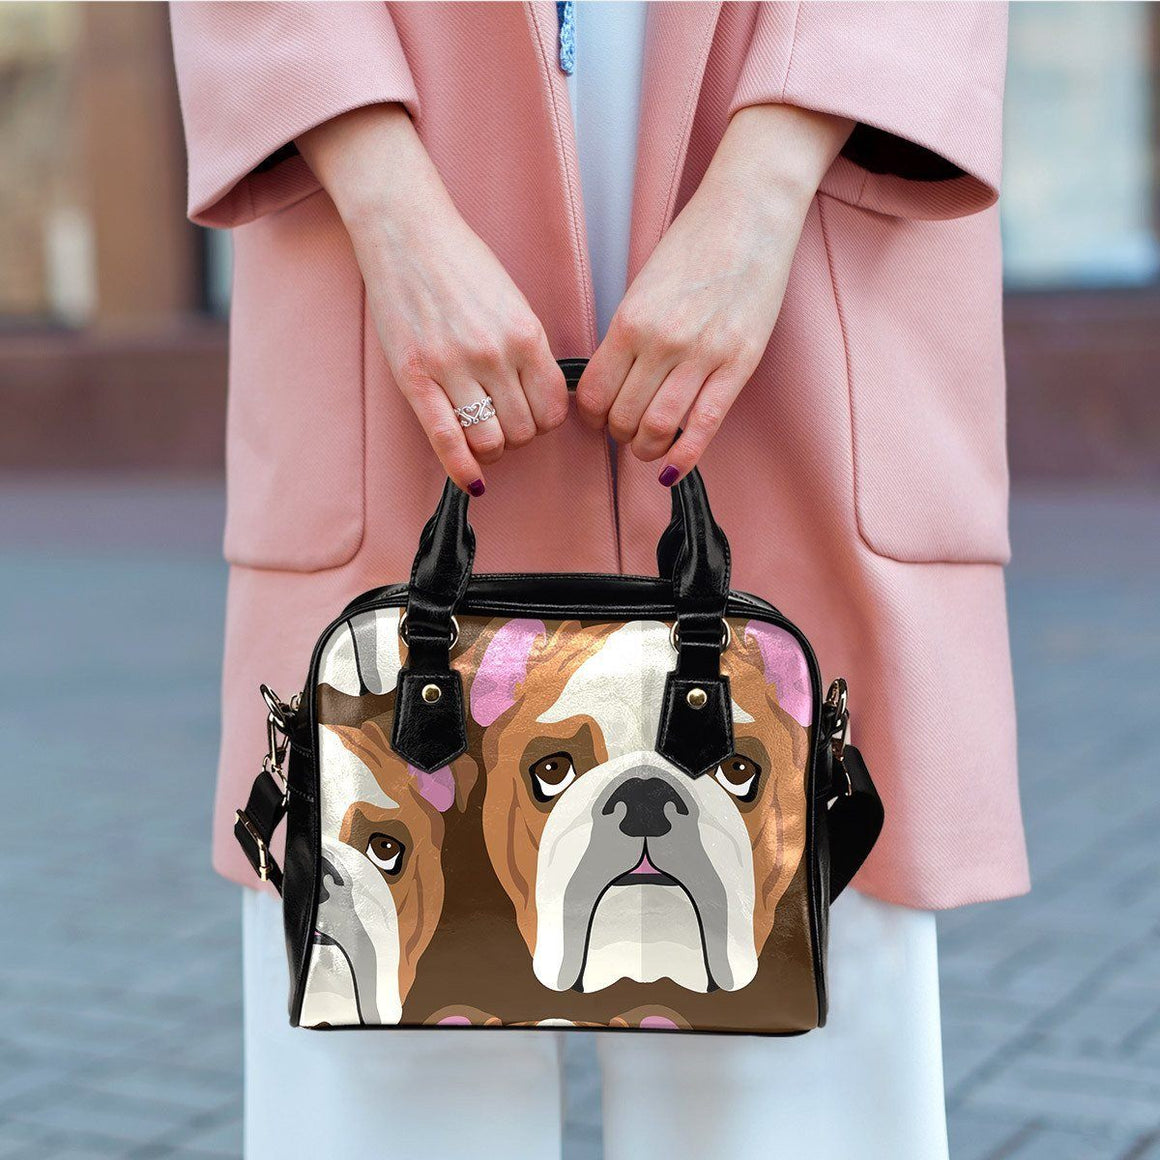 Bulldog Lover Shoulder Bag - ONLINEPRESALES